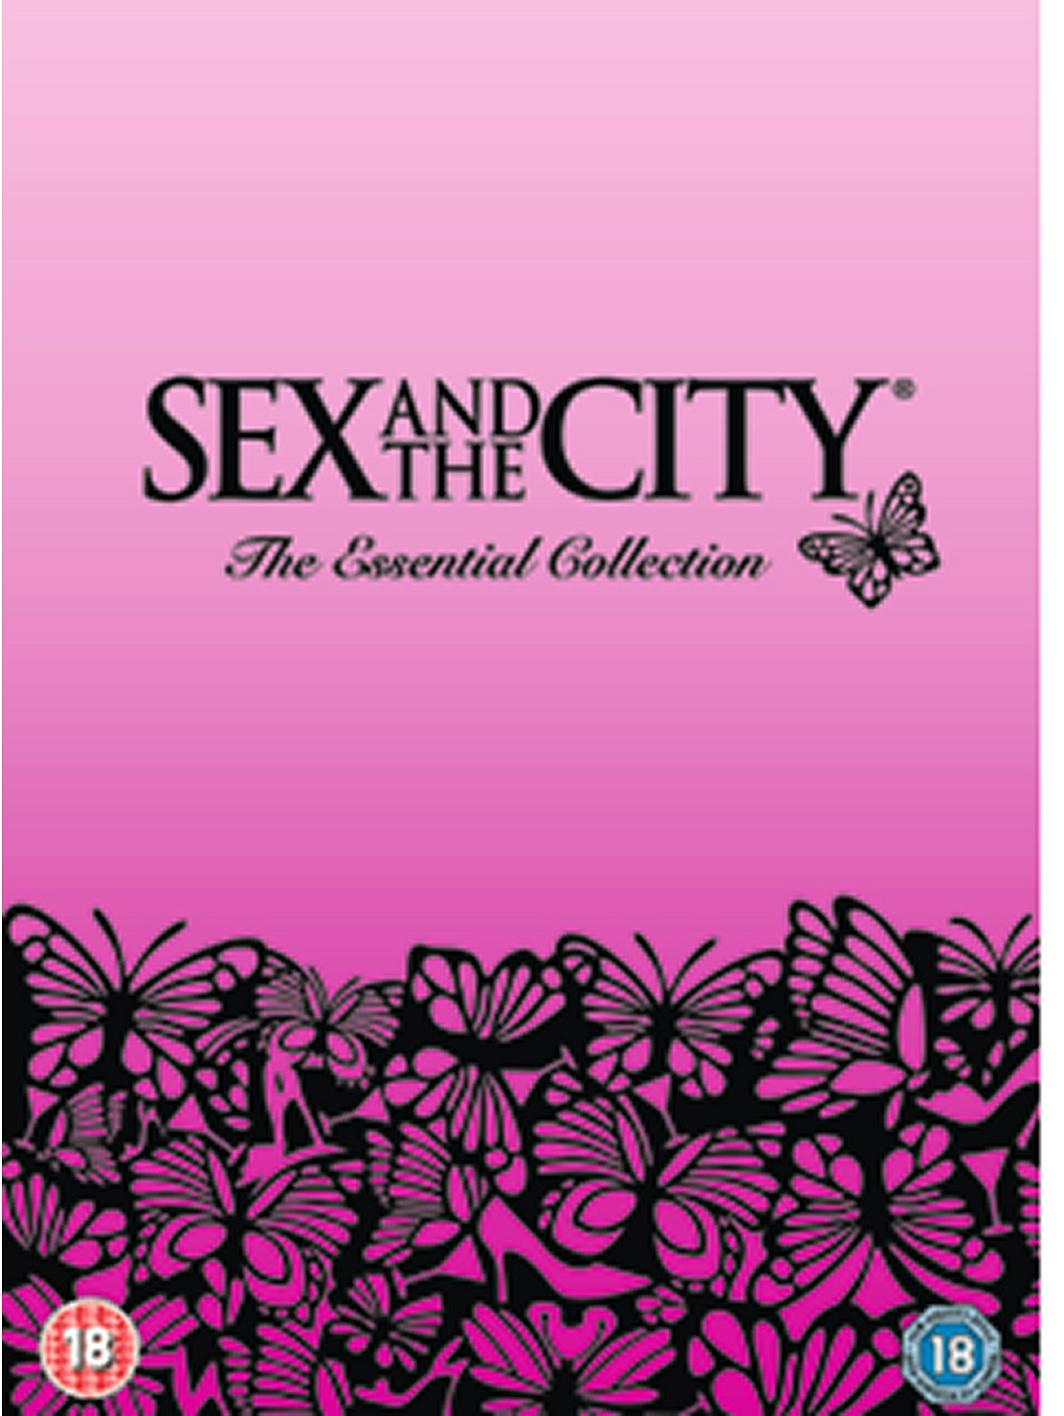 Sex and The City Complete 1-6 Box Set DVD | littlewoodsireland.ie: http://www.littlewoodsireland.ie/sex-and-the-city-complete-1-6-box-set-dvd/645876302.prd